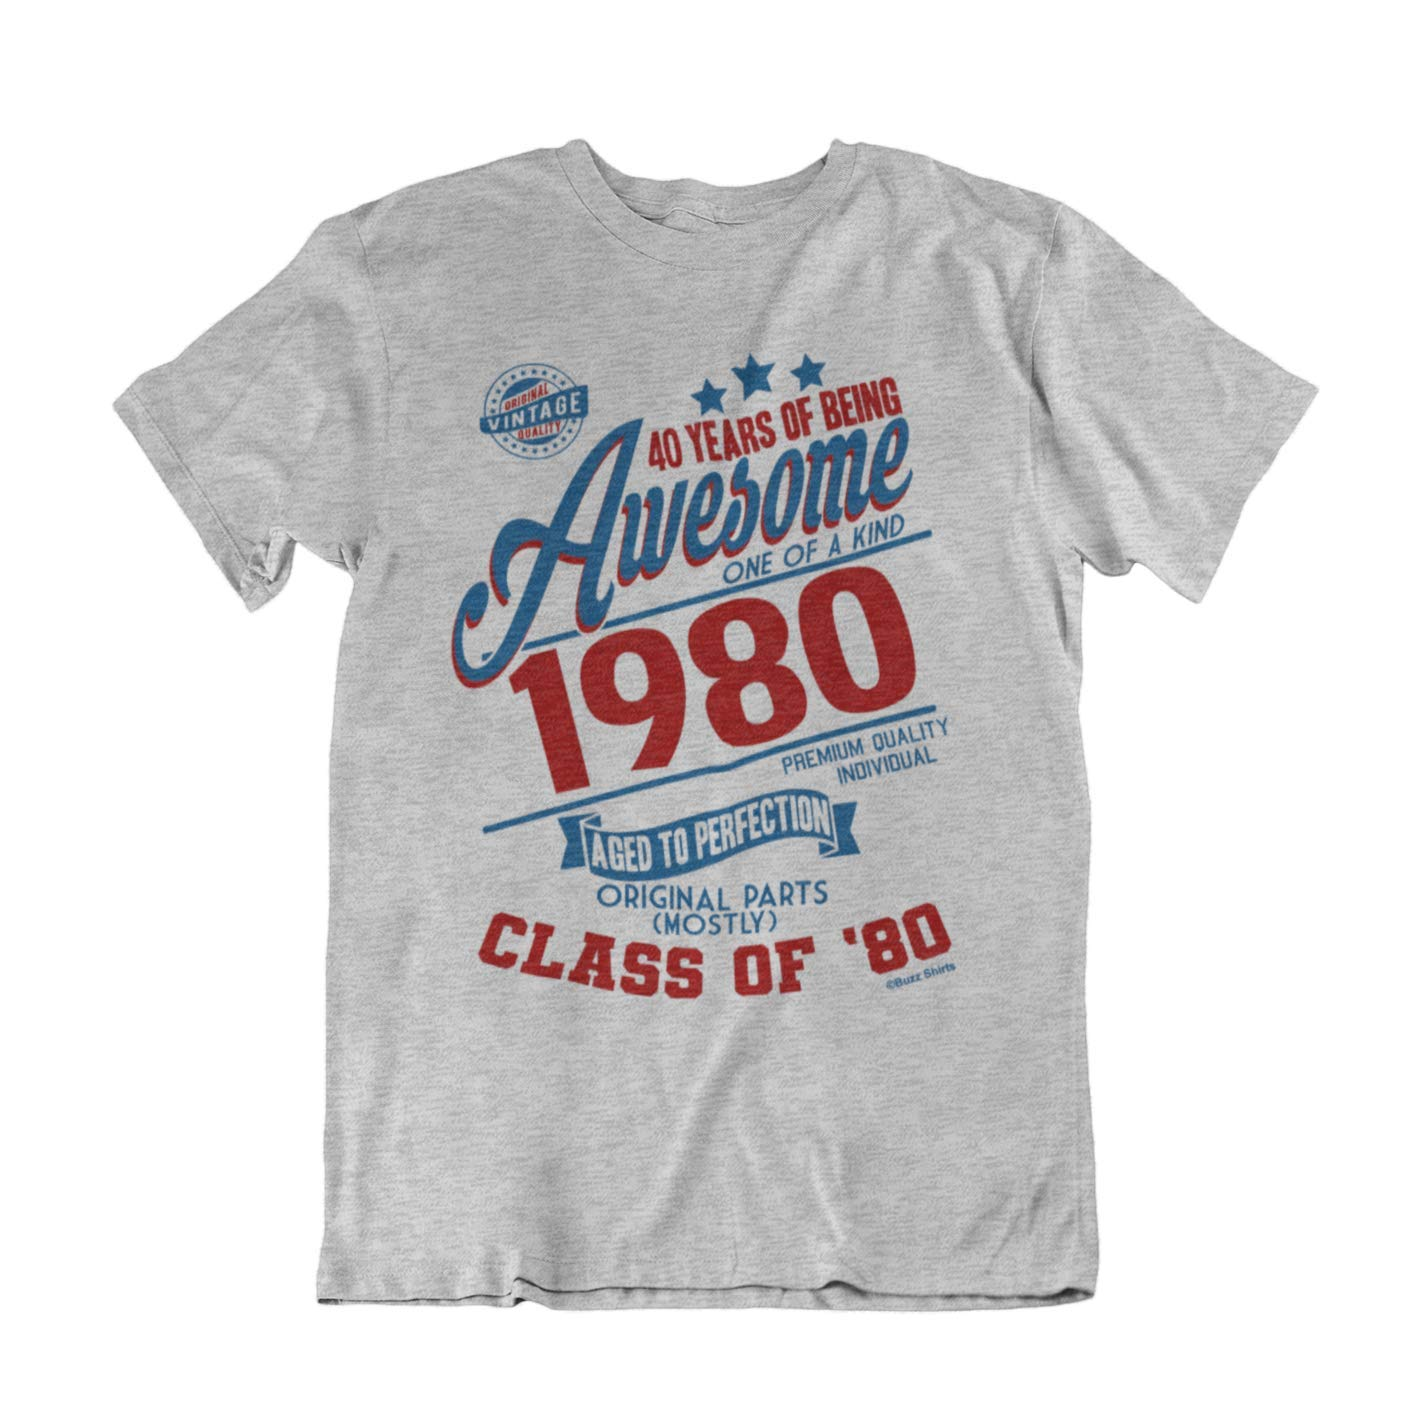 Buzz Camisetas para Hombre de cumpleaños T-Shirt 40 Years of Being Awesome 1979 Aged To Perfection Class of 79